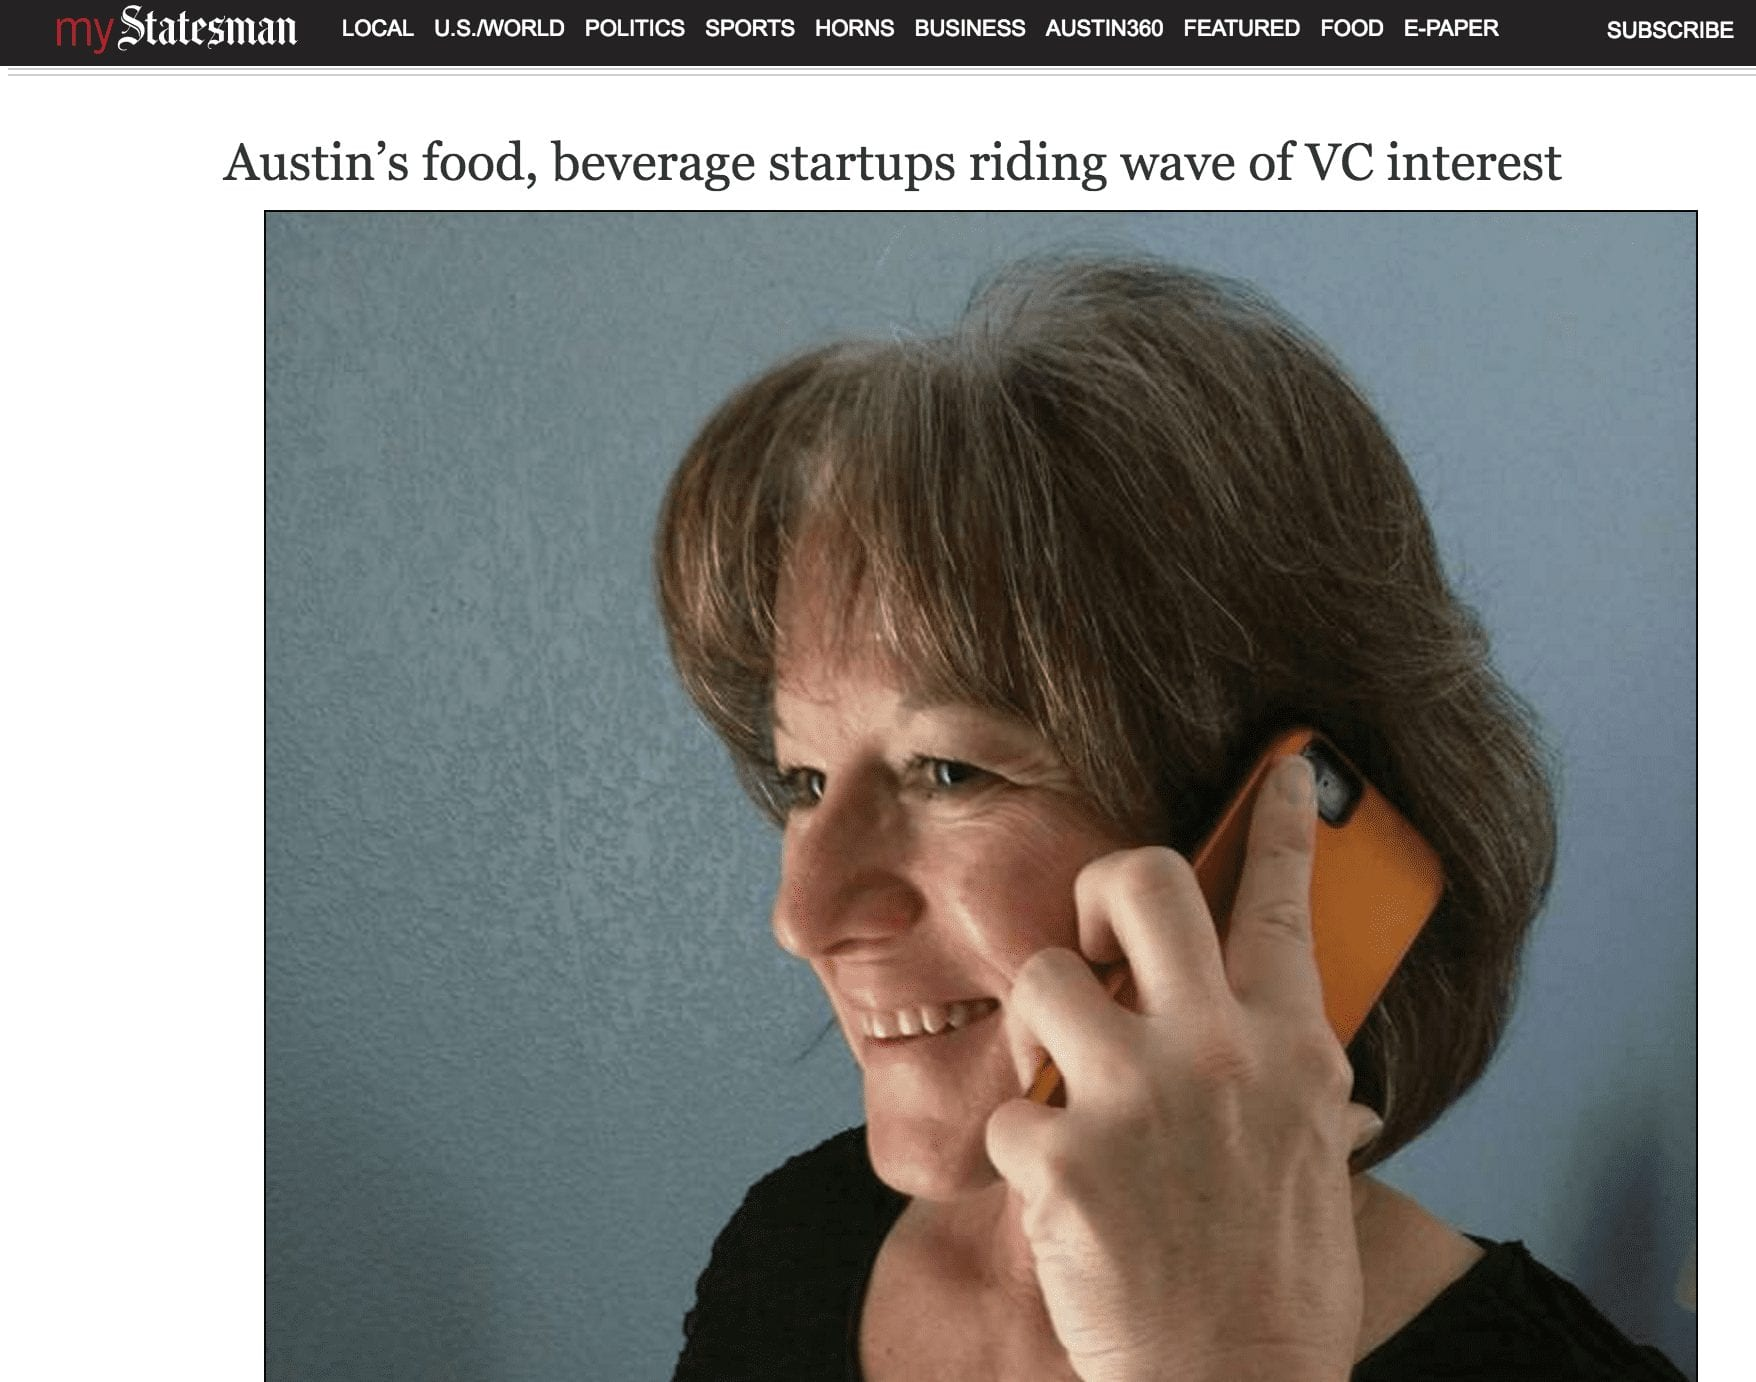 Jean Anne Booth and Kanega Watch Featured on Austin Statesman